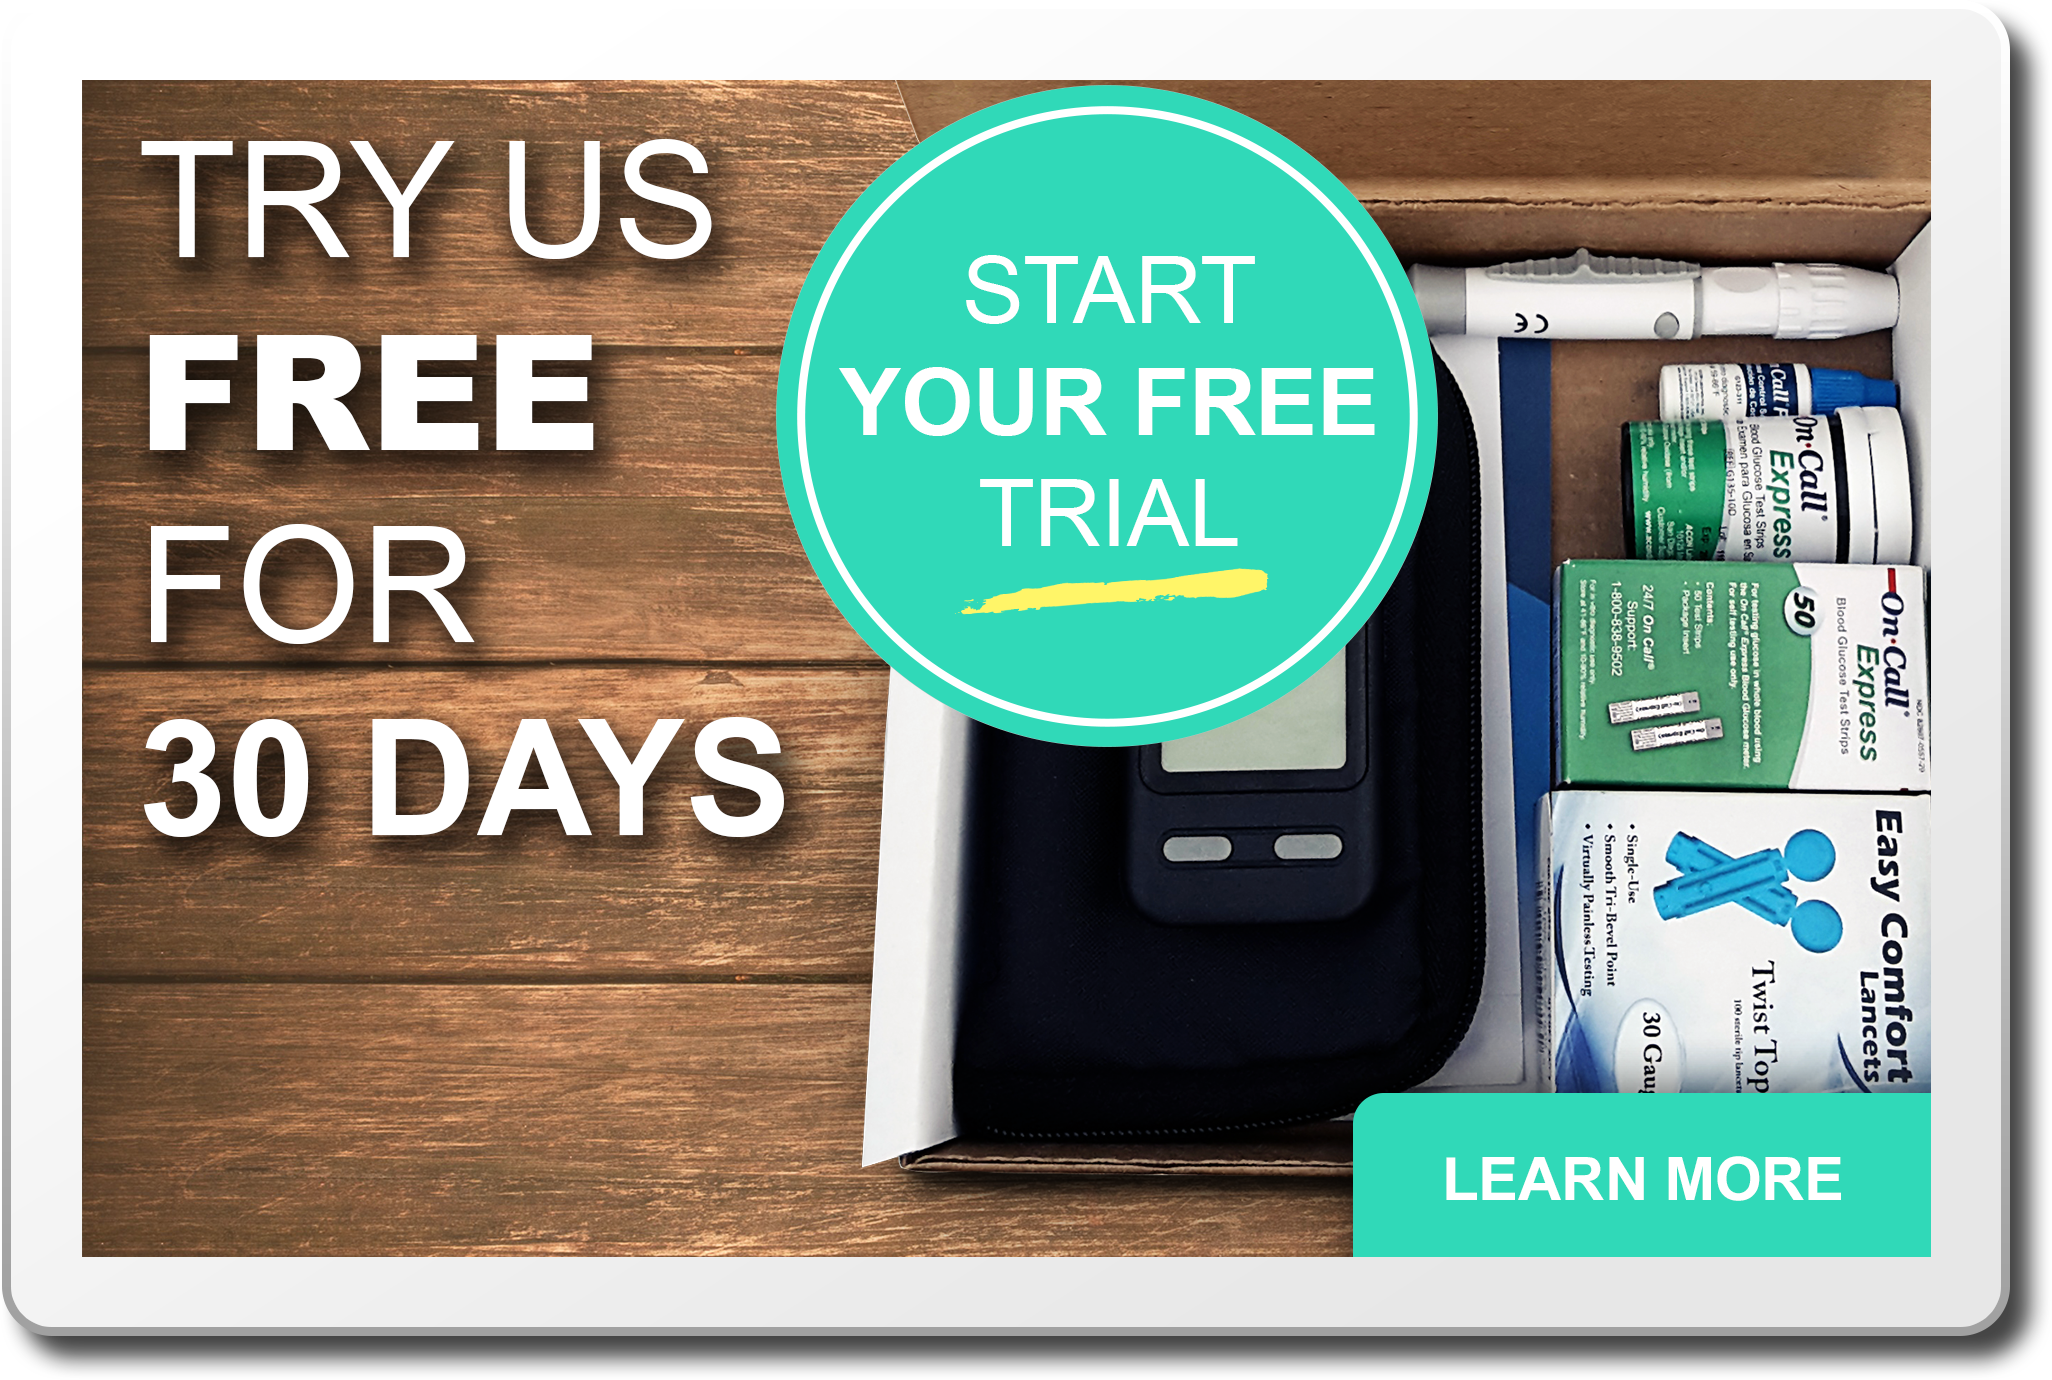 Try Us Free For 30 Days. Start Your Free Trial Now.  Learn More.